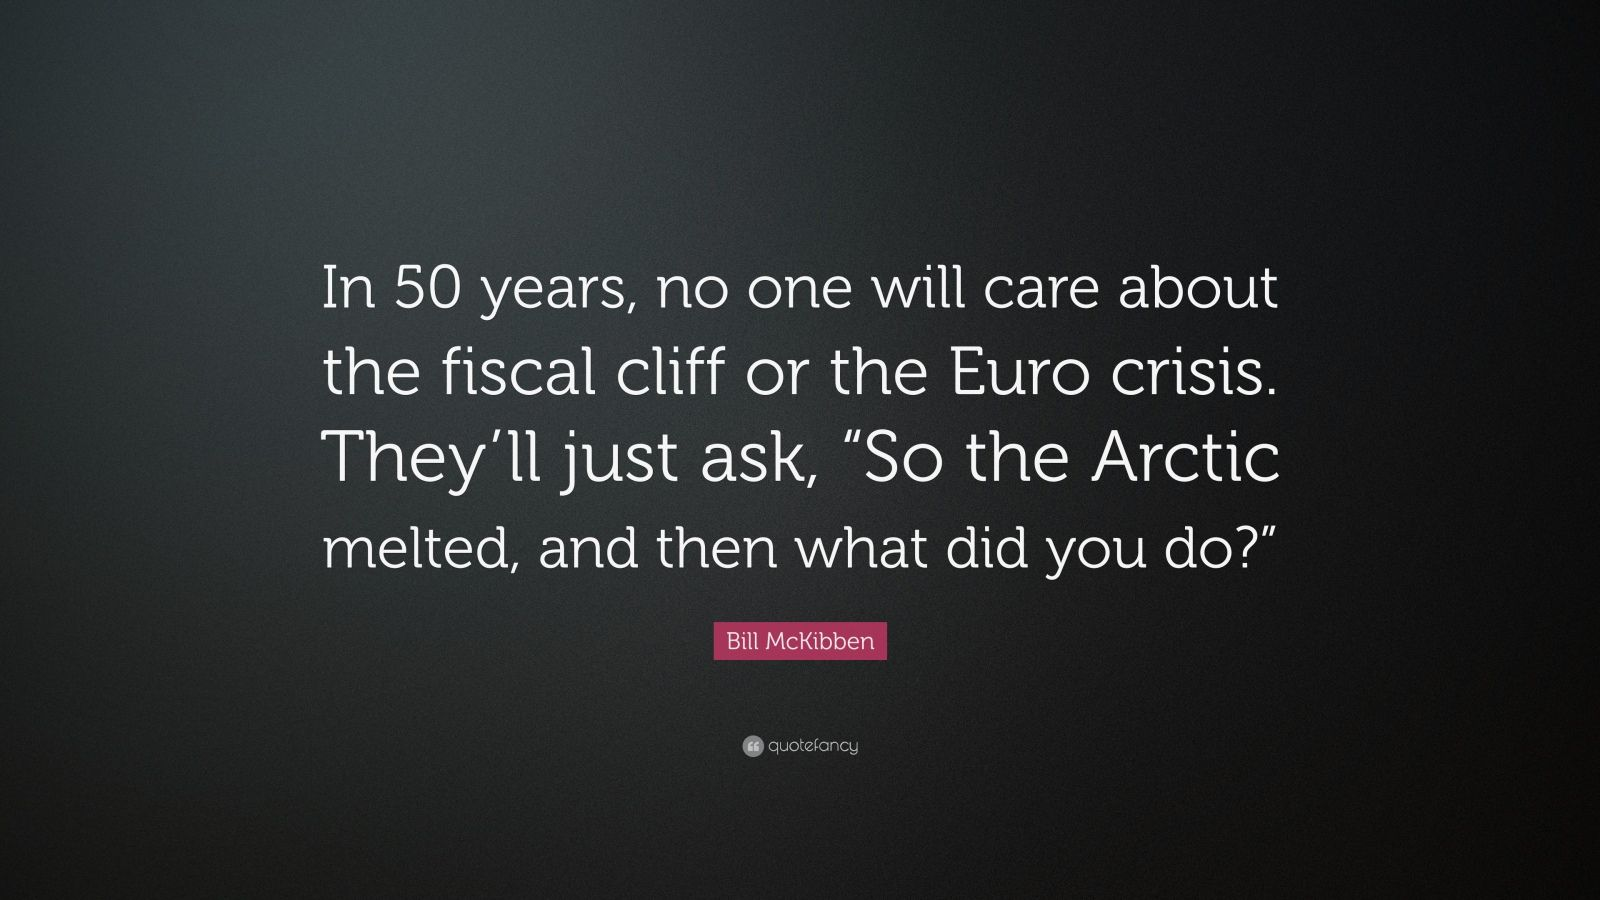 """Bill McKibben Quote: """"In 50 years, no one will care about the fiscal cliff or the Euro crisis. They'll just ask, """"So the Arctic melted, and then what did you do?"""""""""""